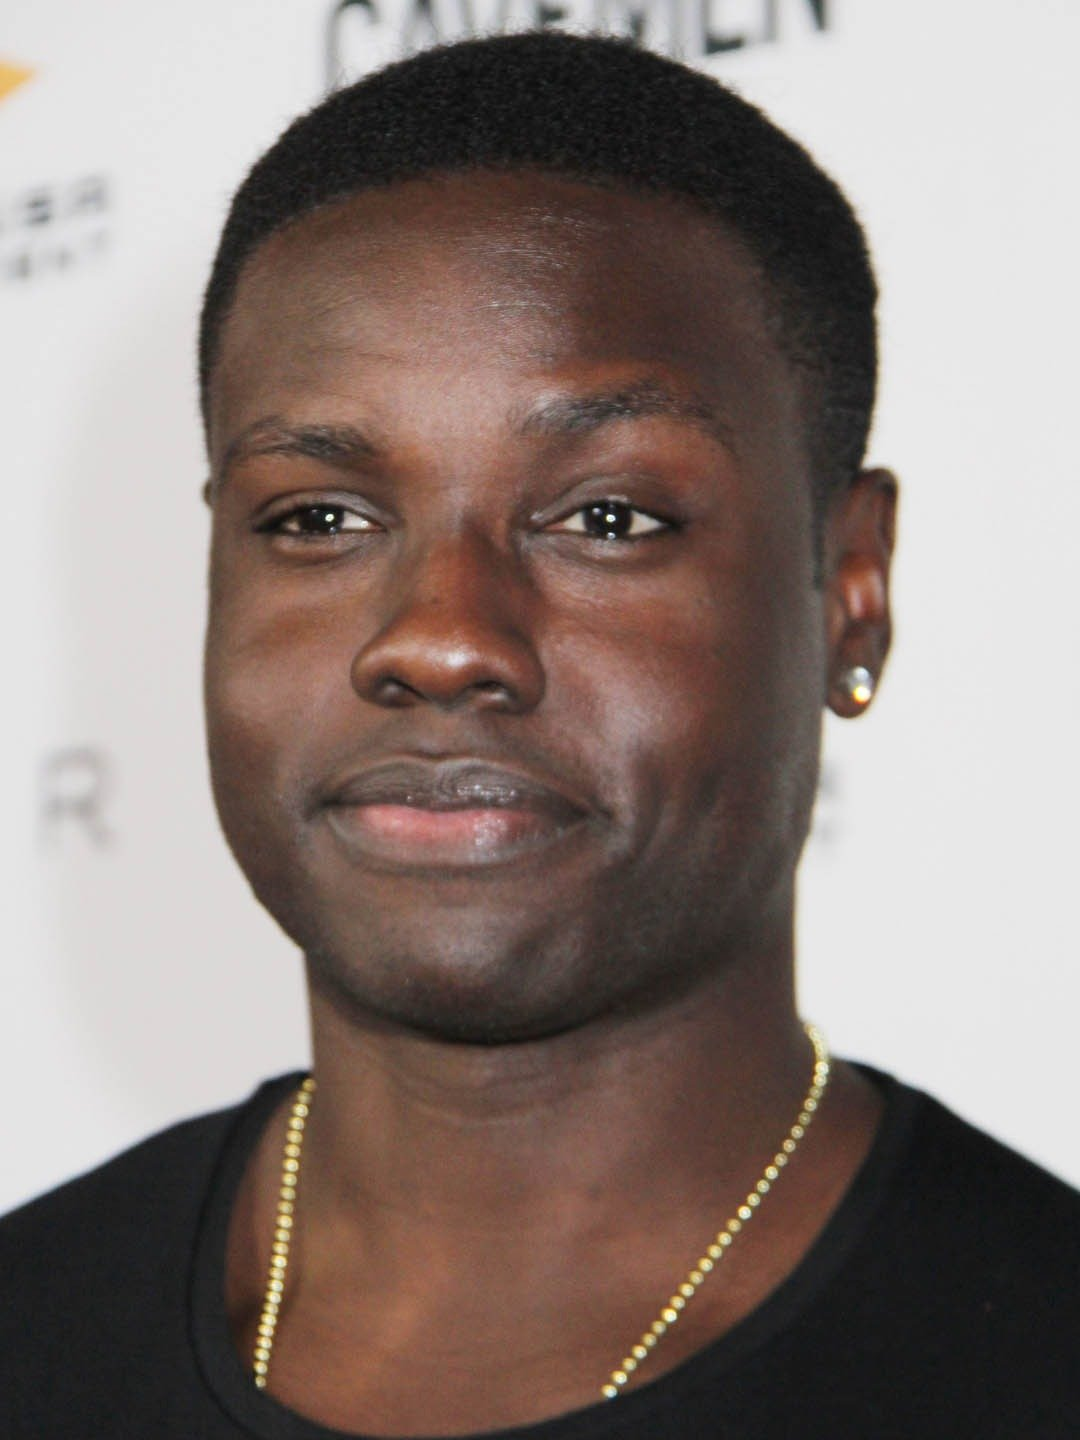 How tall is Dayo Okeniyi?